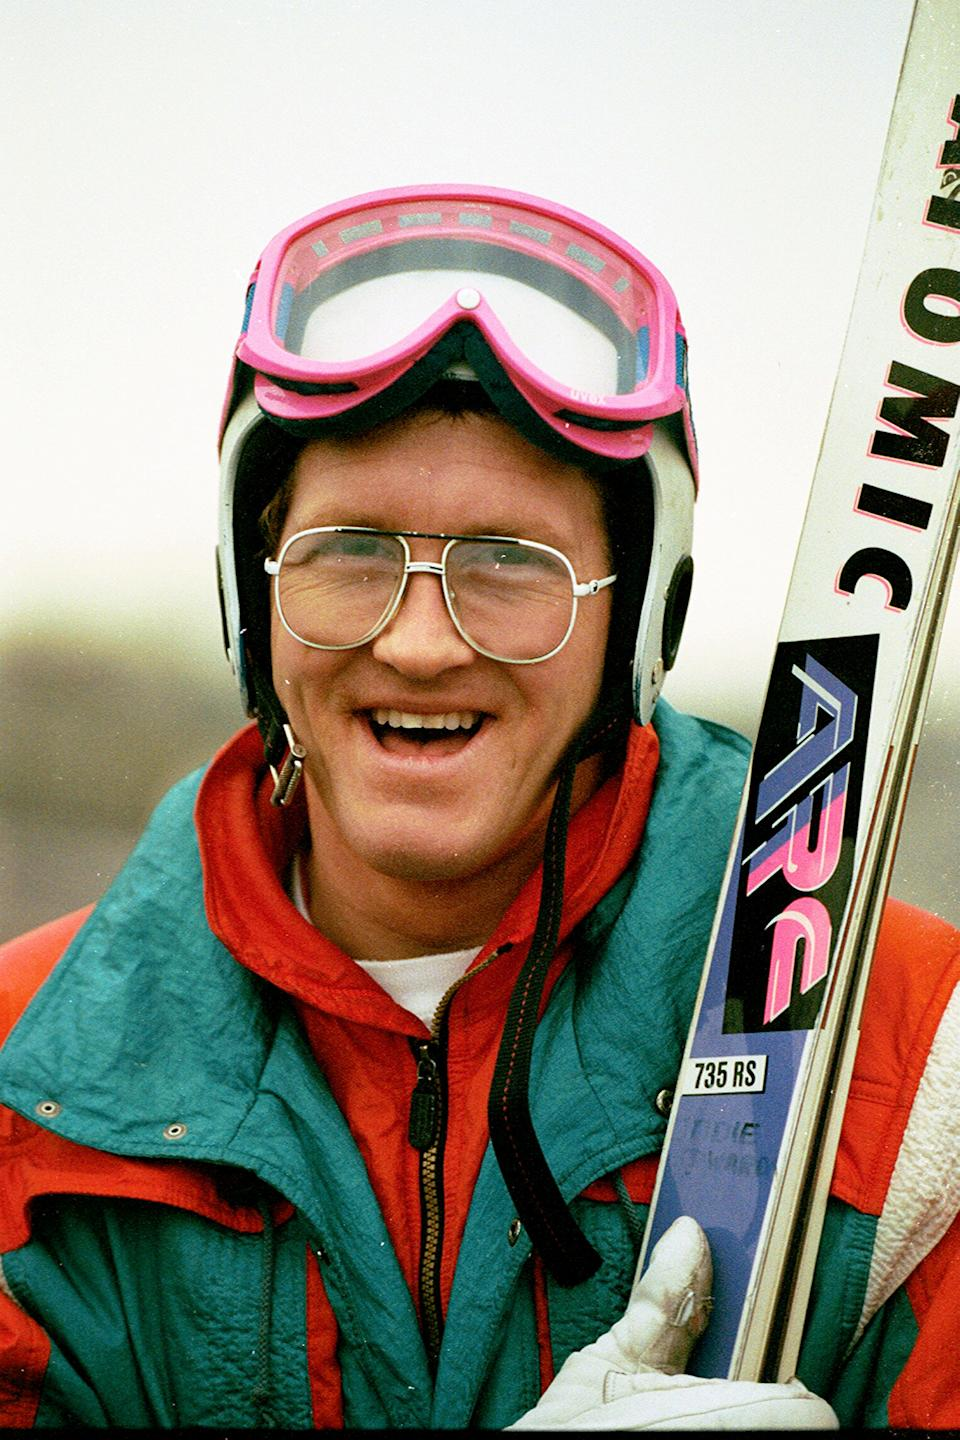 Former British ski jumper, Eddie 'The Eagle' Edwards. (SWNS)